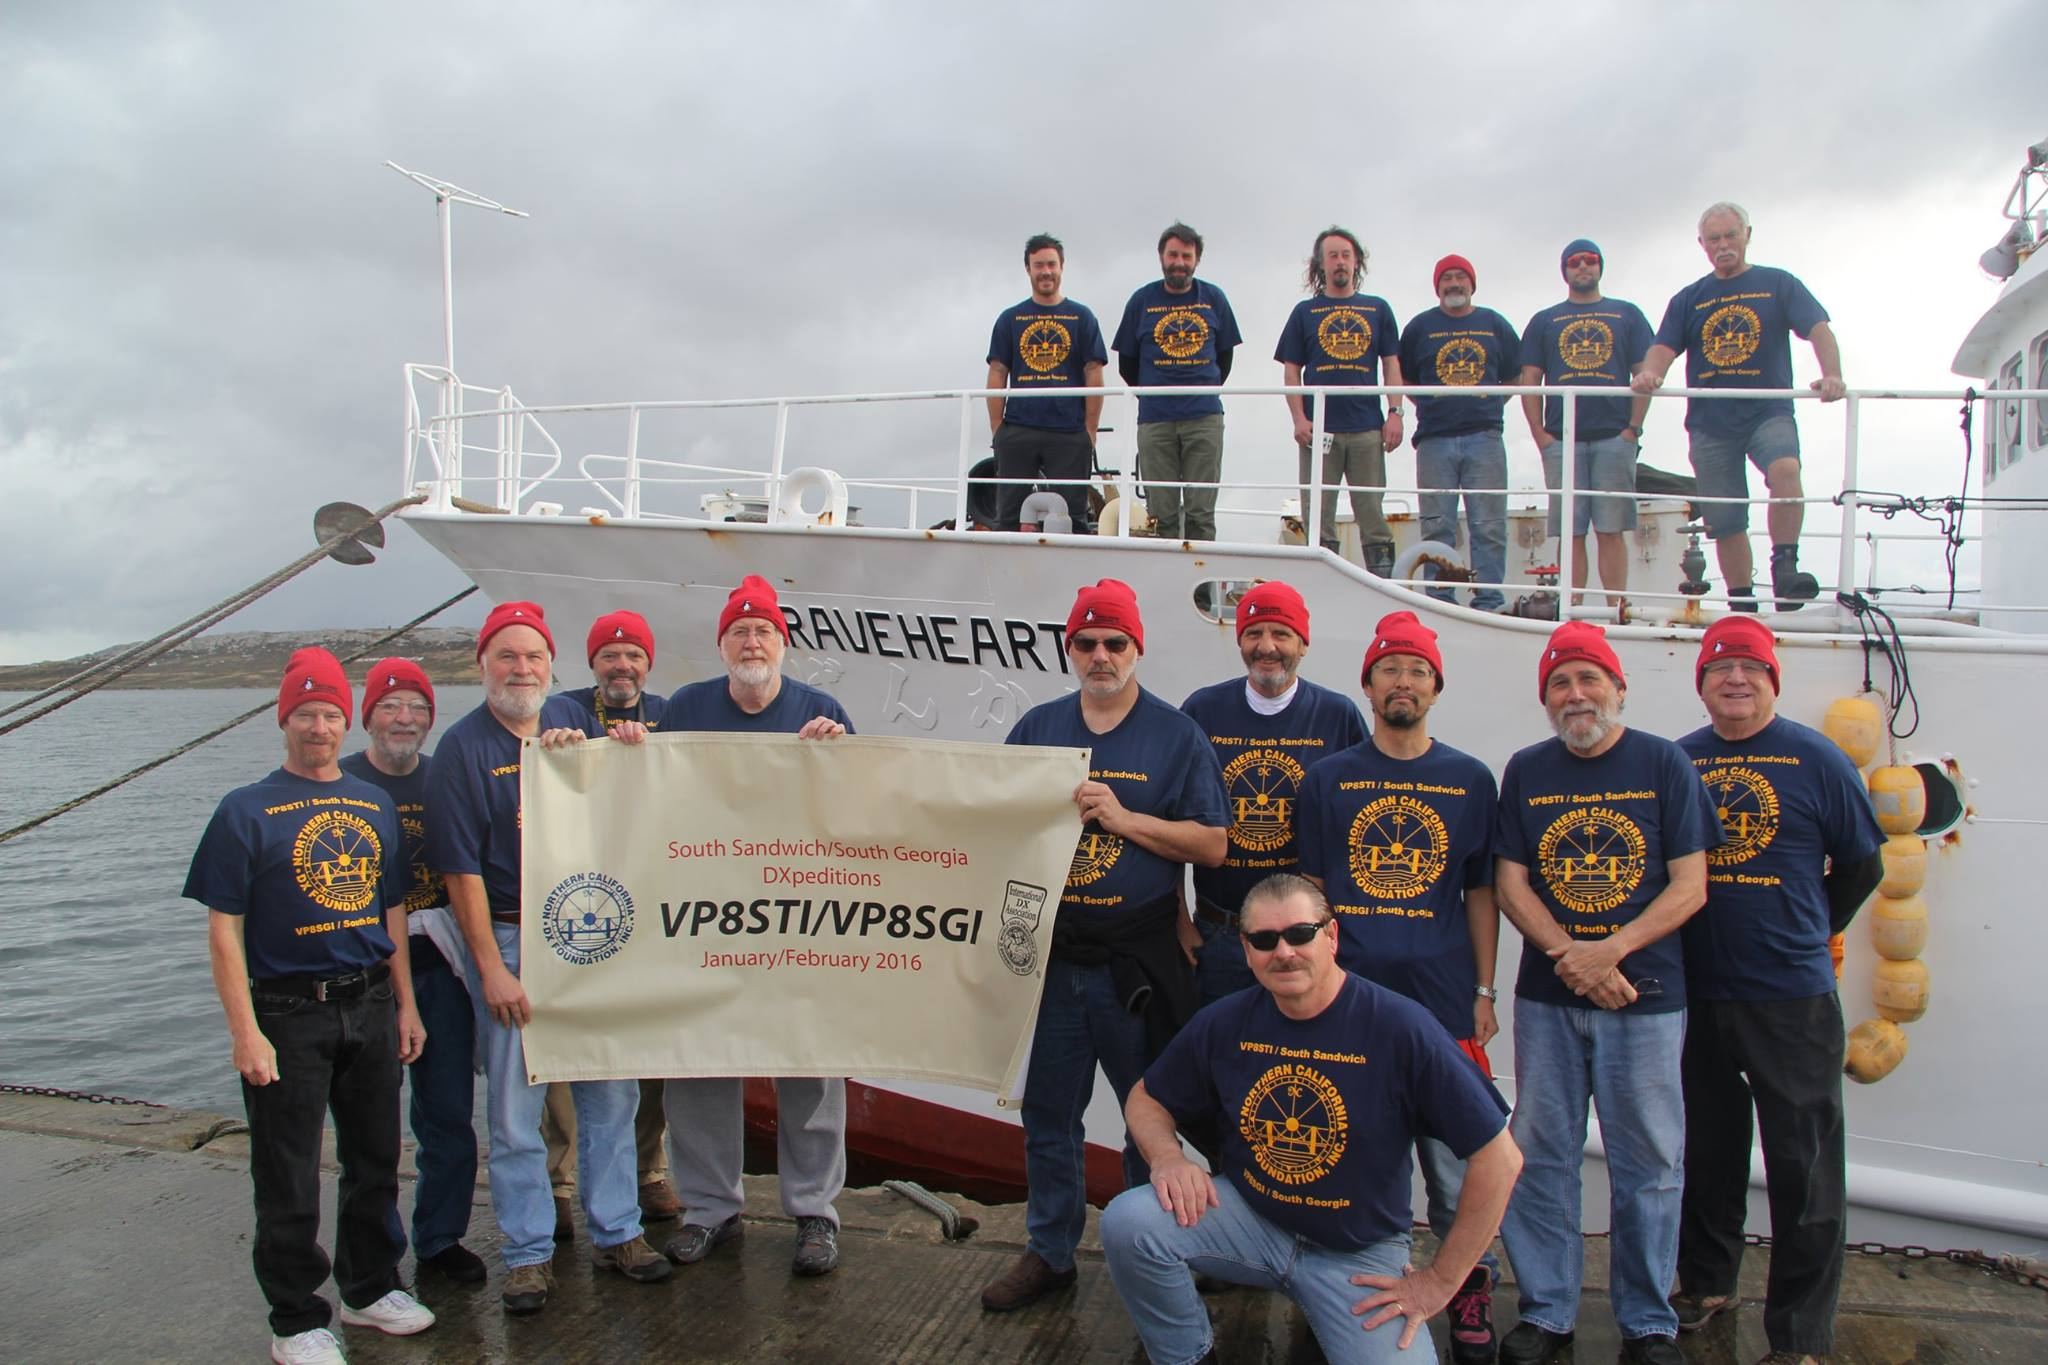 The DXpedition of the year 2015/2016 VP8STI&VP8SGI